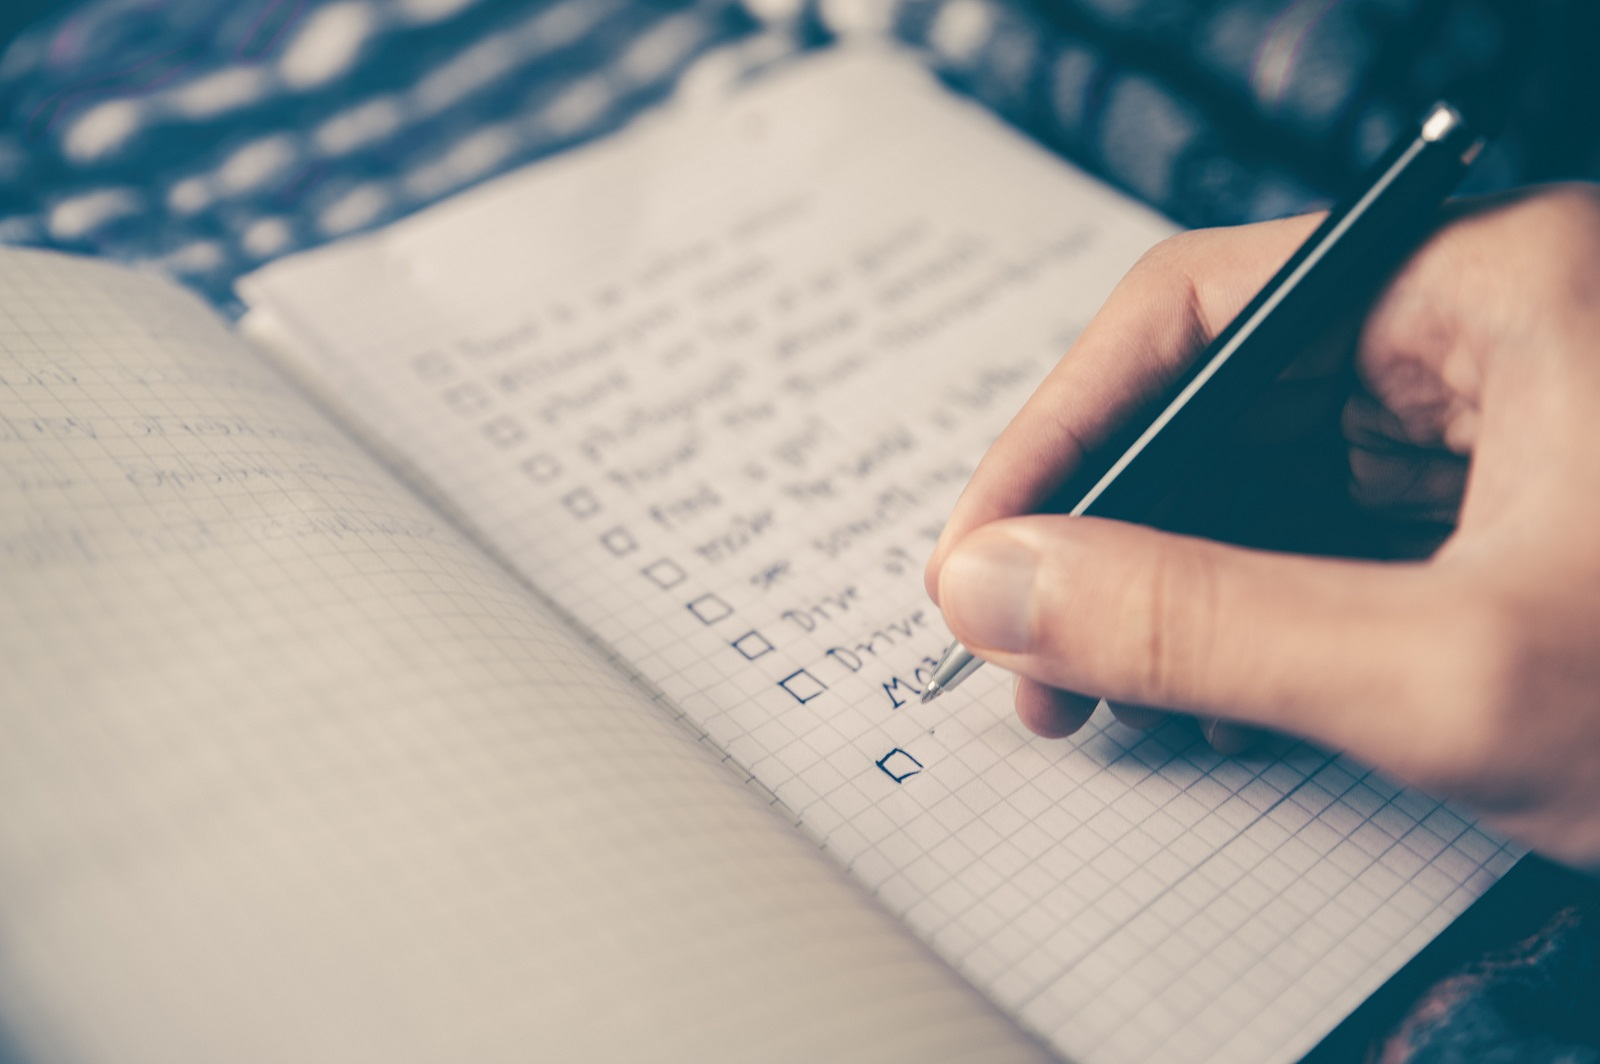 A checklist representing an IT evaluation checklist